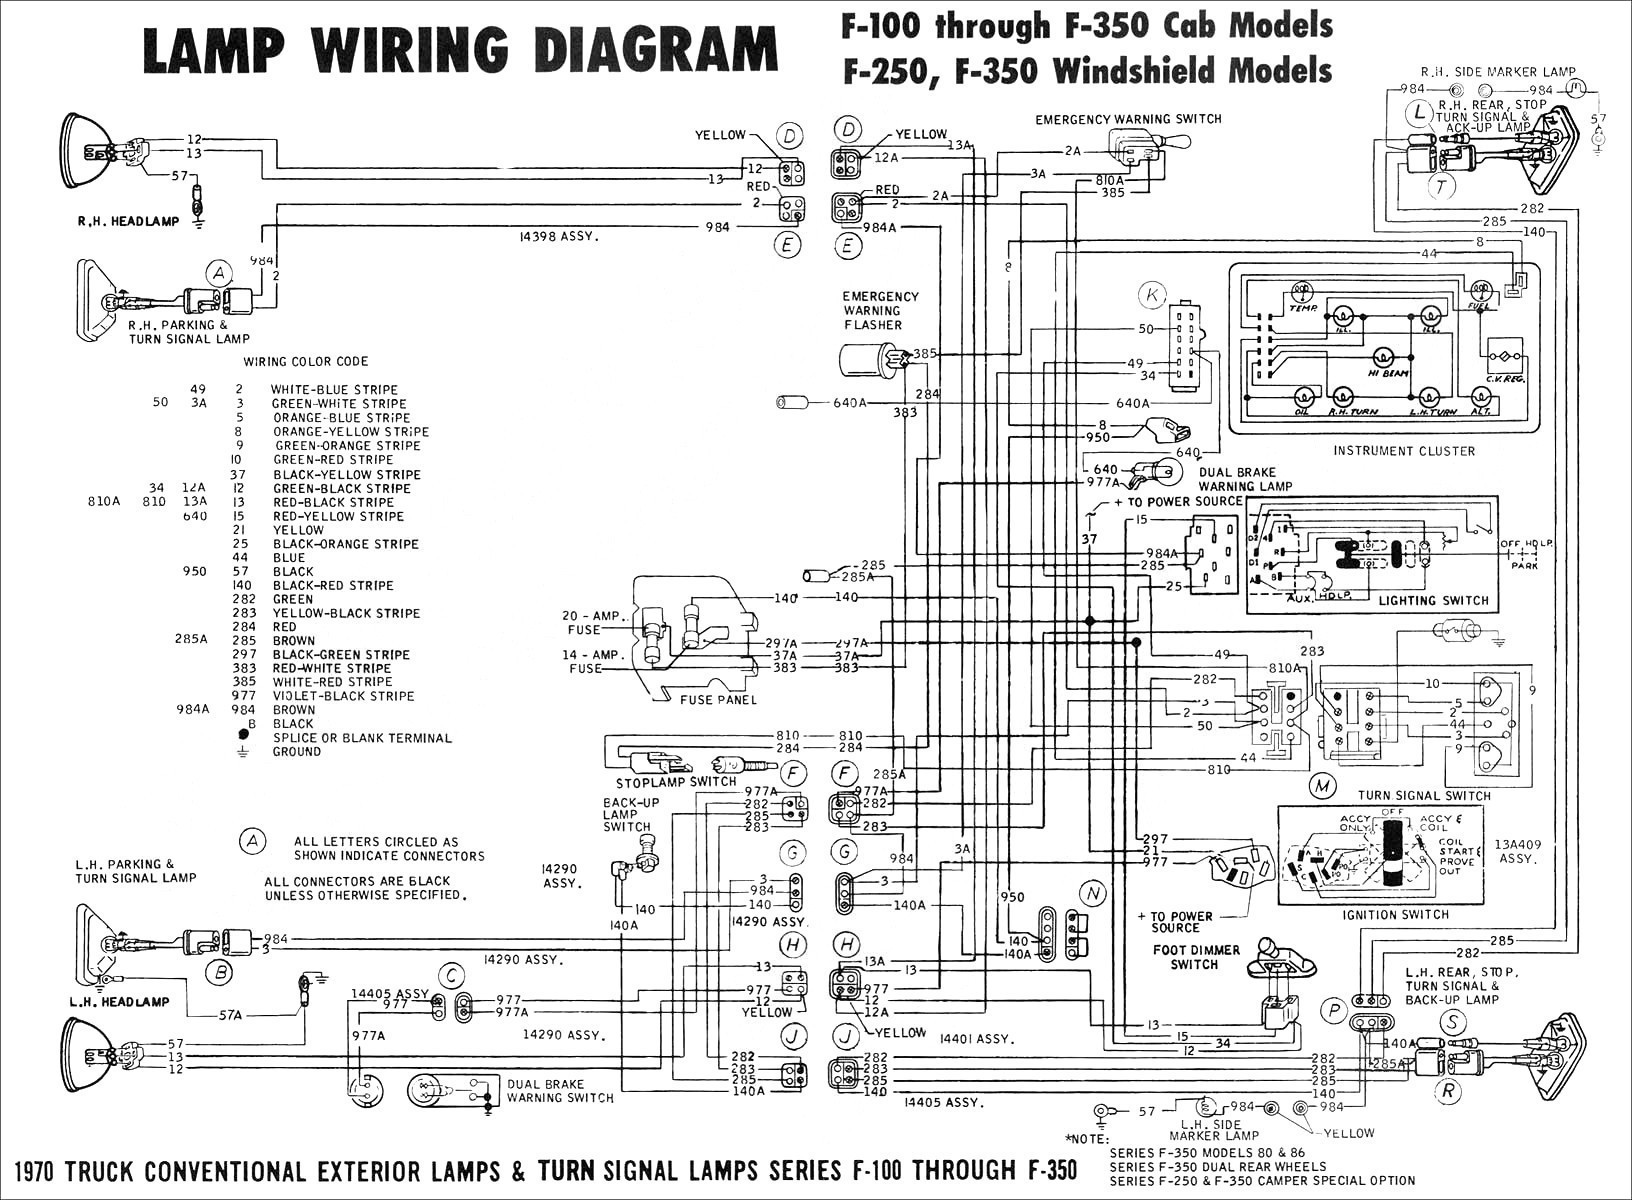 2004 ford F150 Parts Diagram 2005 ford Gt Archives Simple Wiring Diagram Of 2004 ford F150 Parts Diagram